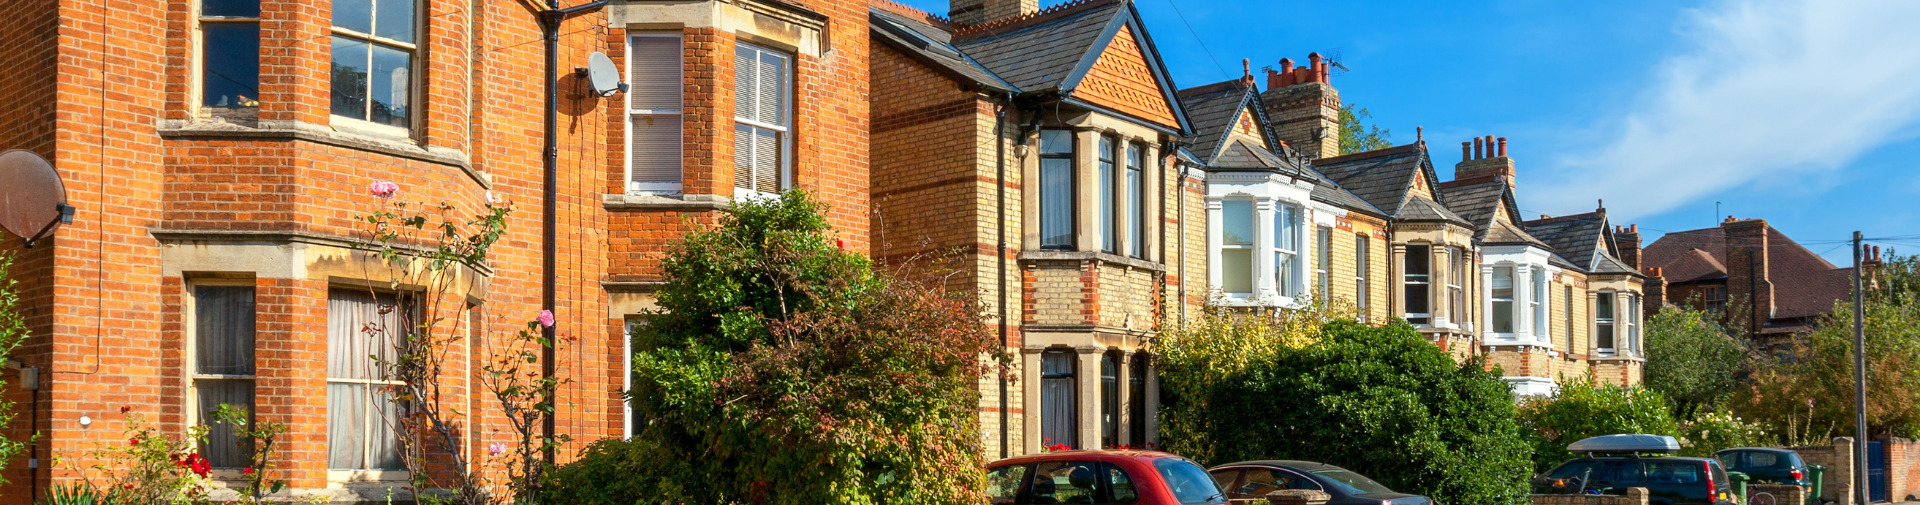 Restrictive Covenants in Property